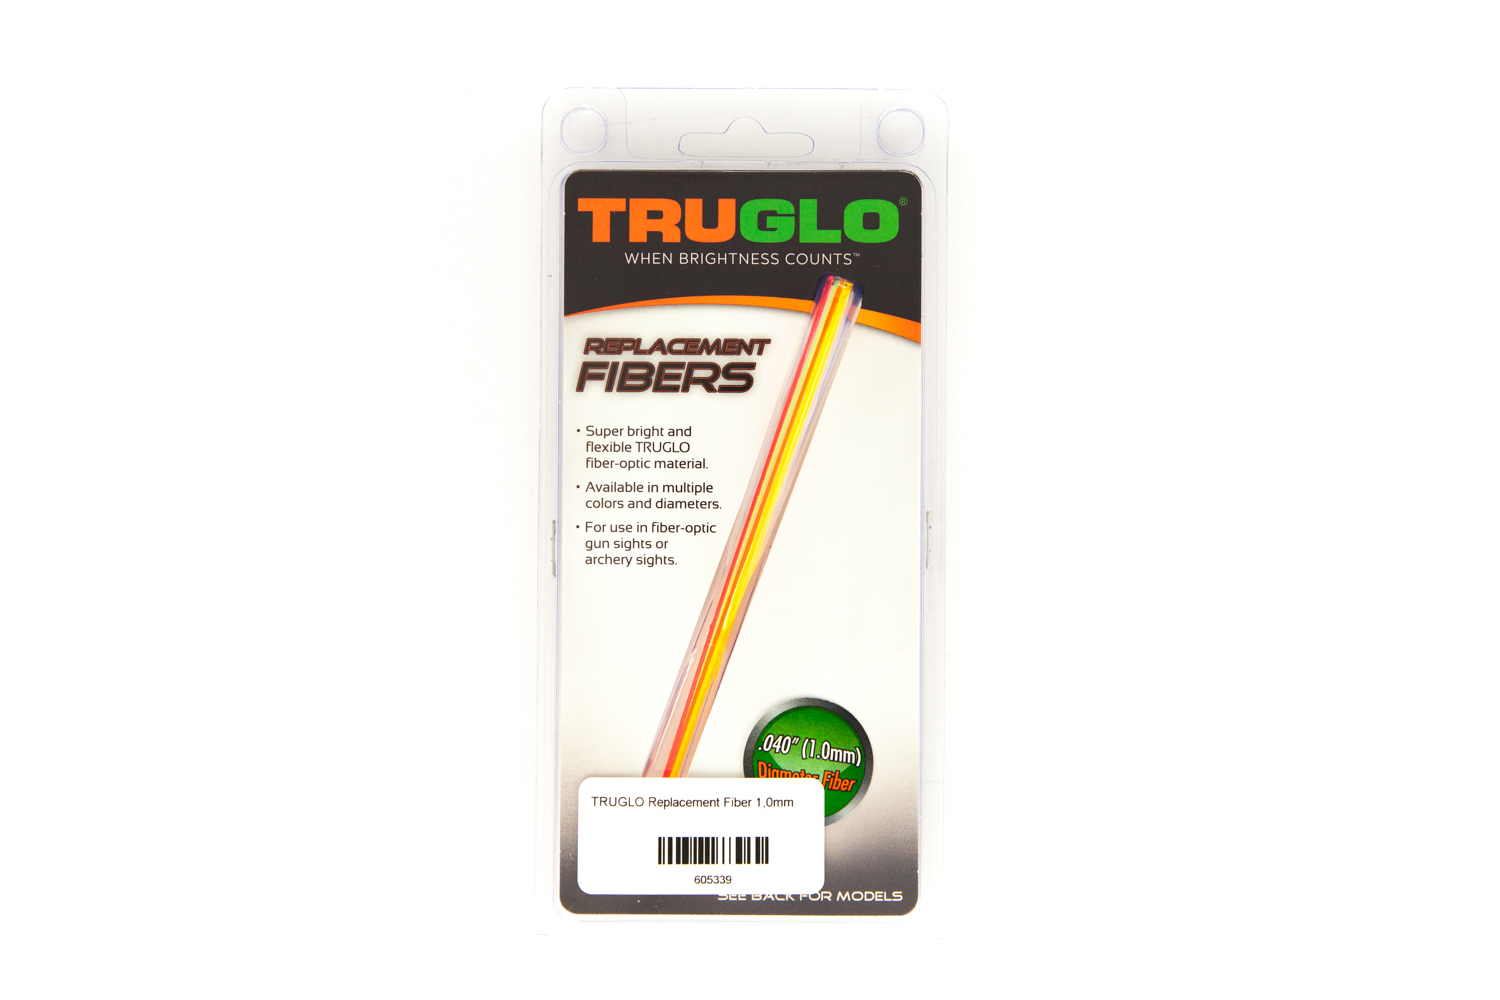 TRUGLO Replacement Fiber 1,0mm